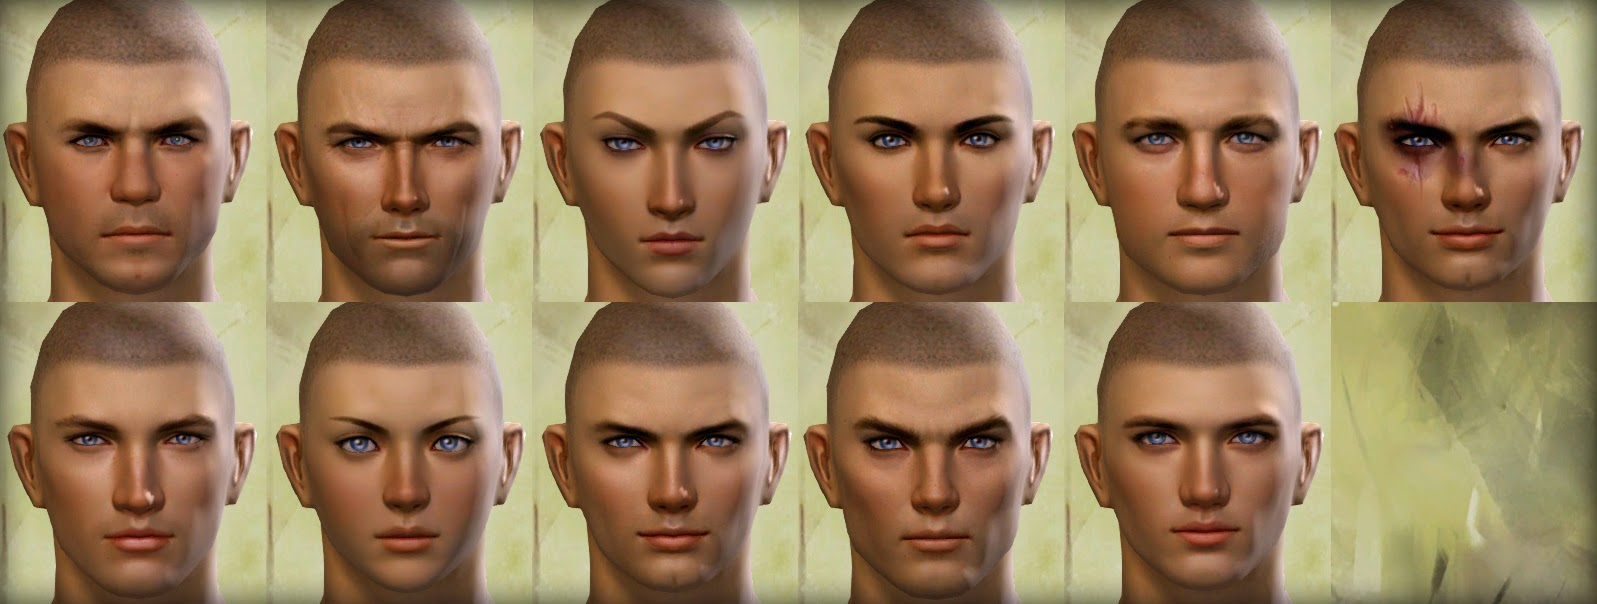 Guild Wars 2 Human Male Faces